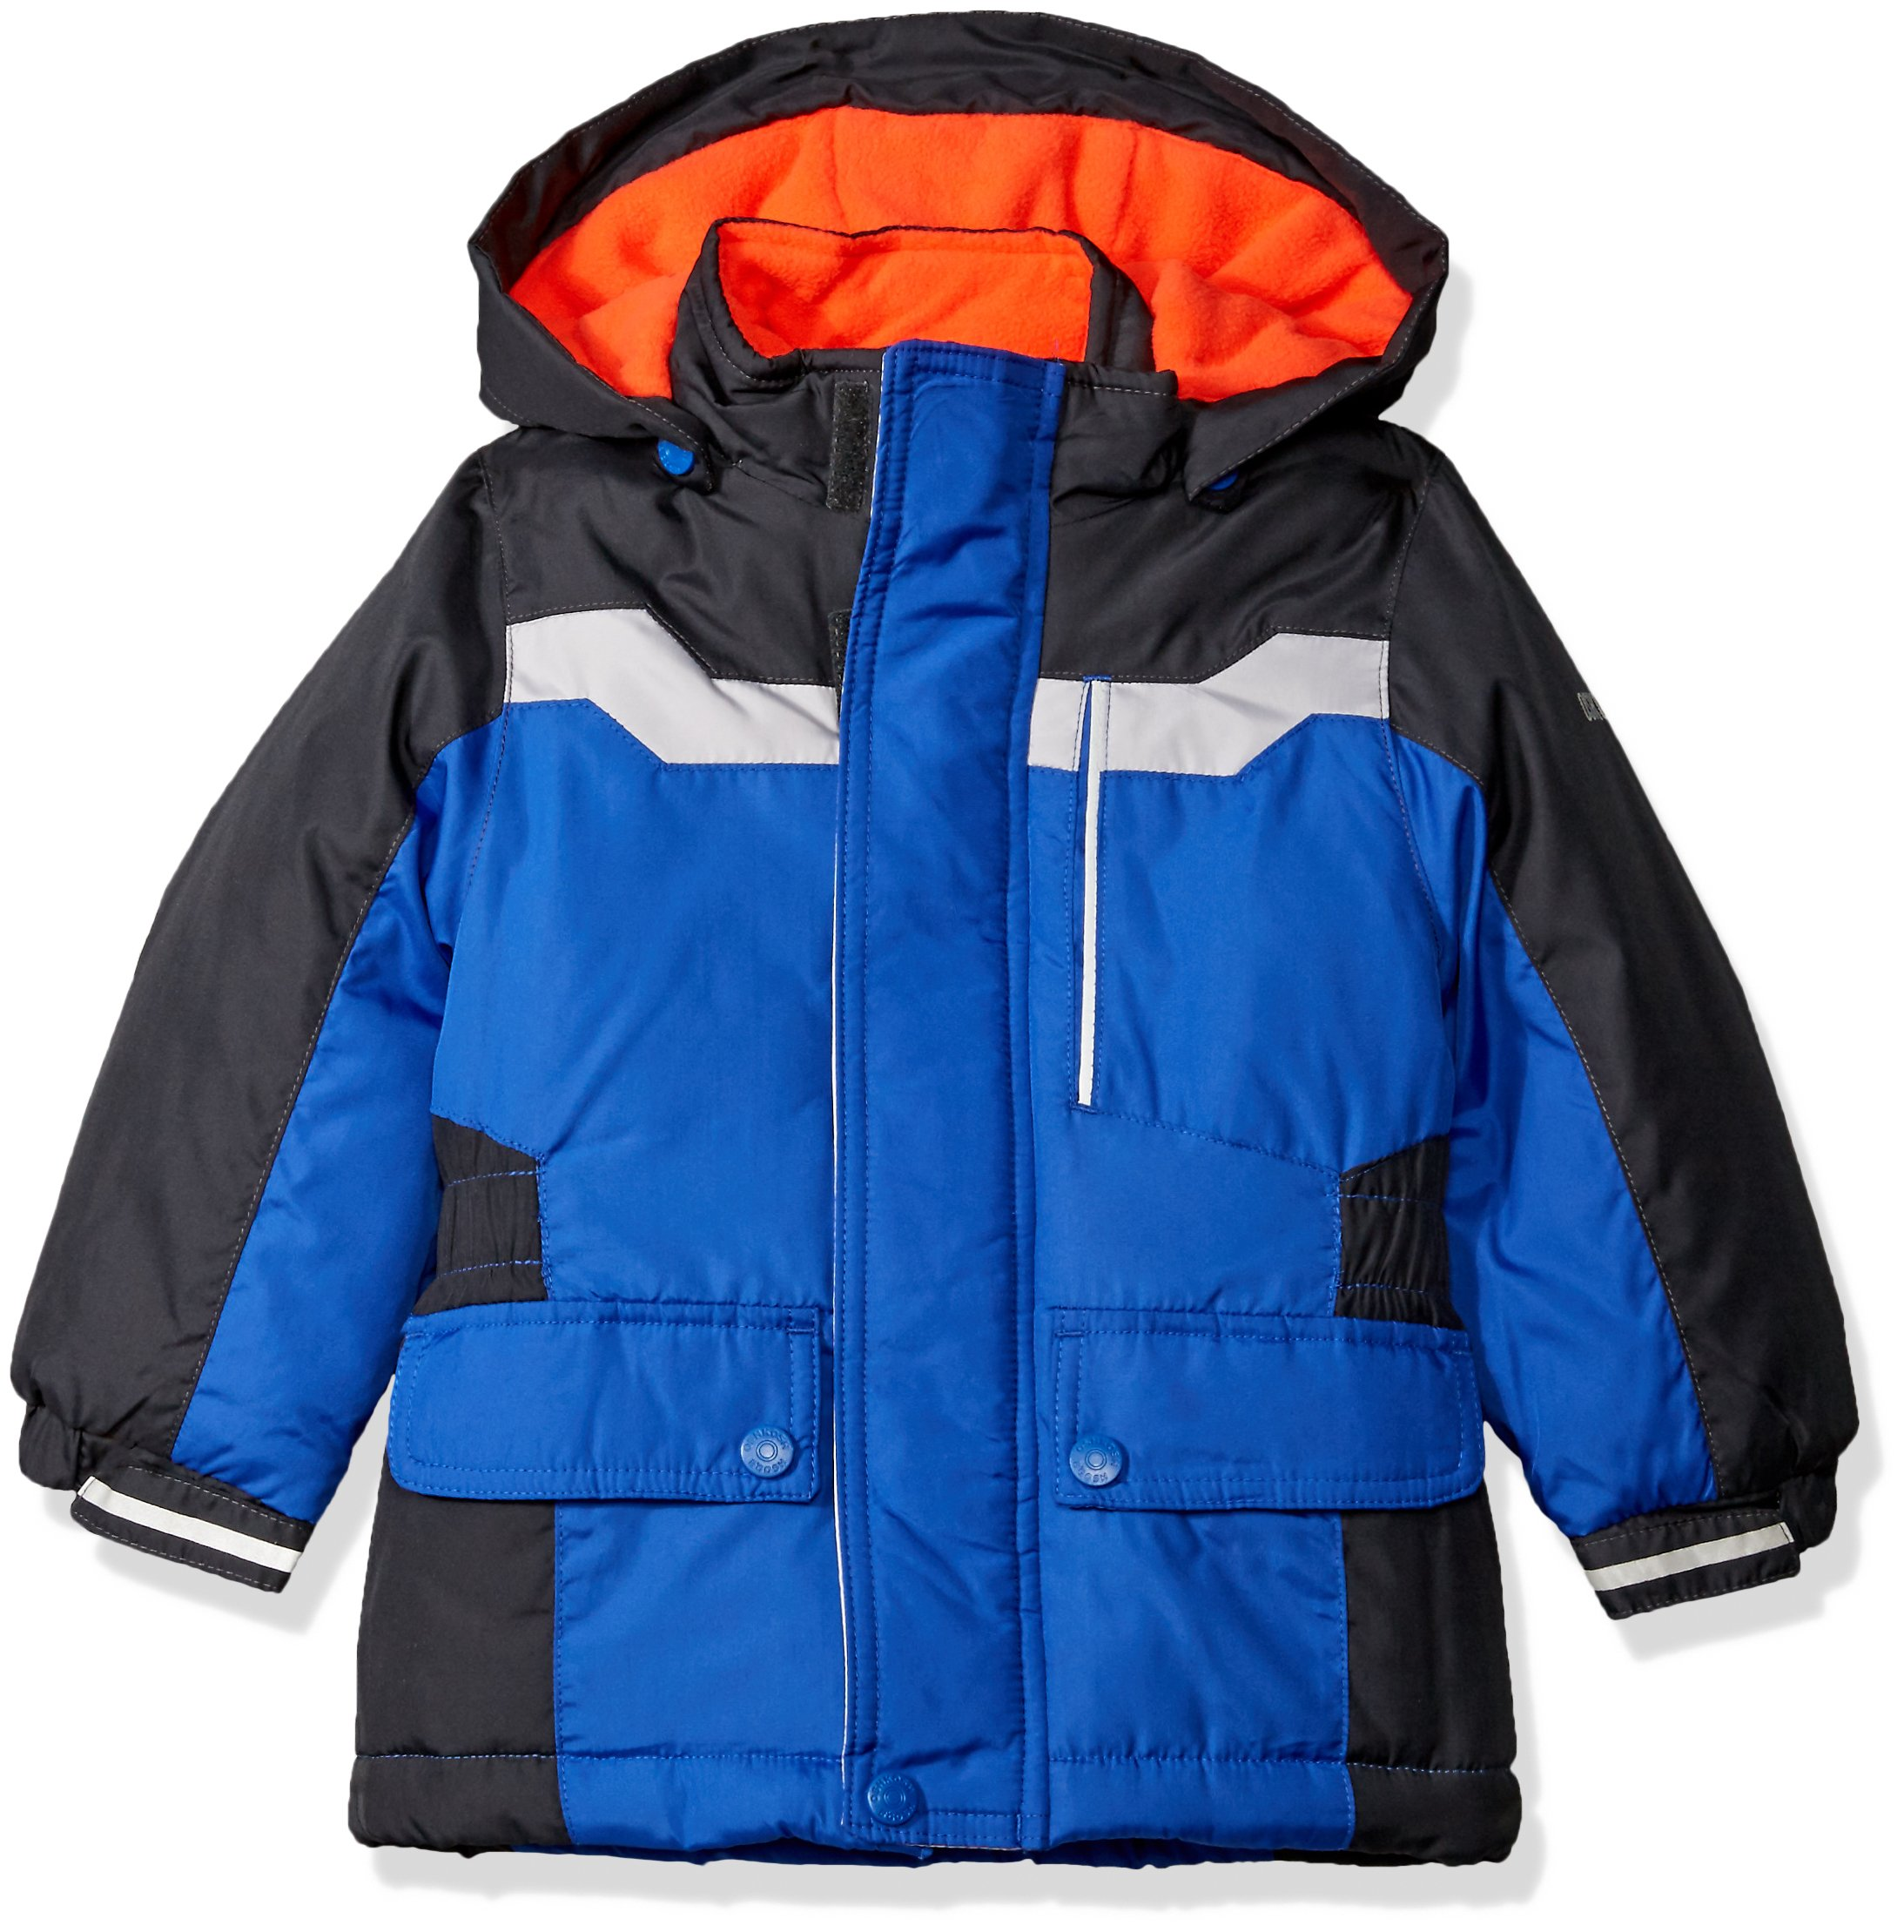 Osh Kosh Little Boys' Classic Heavyweight Active Parka, Blue, 7 by OshKosh B'Gosh